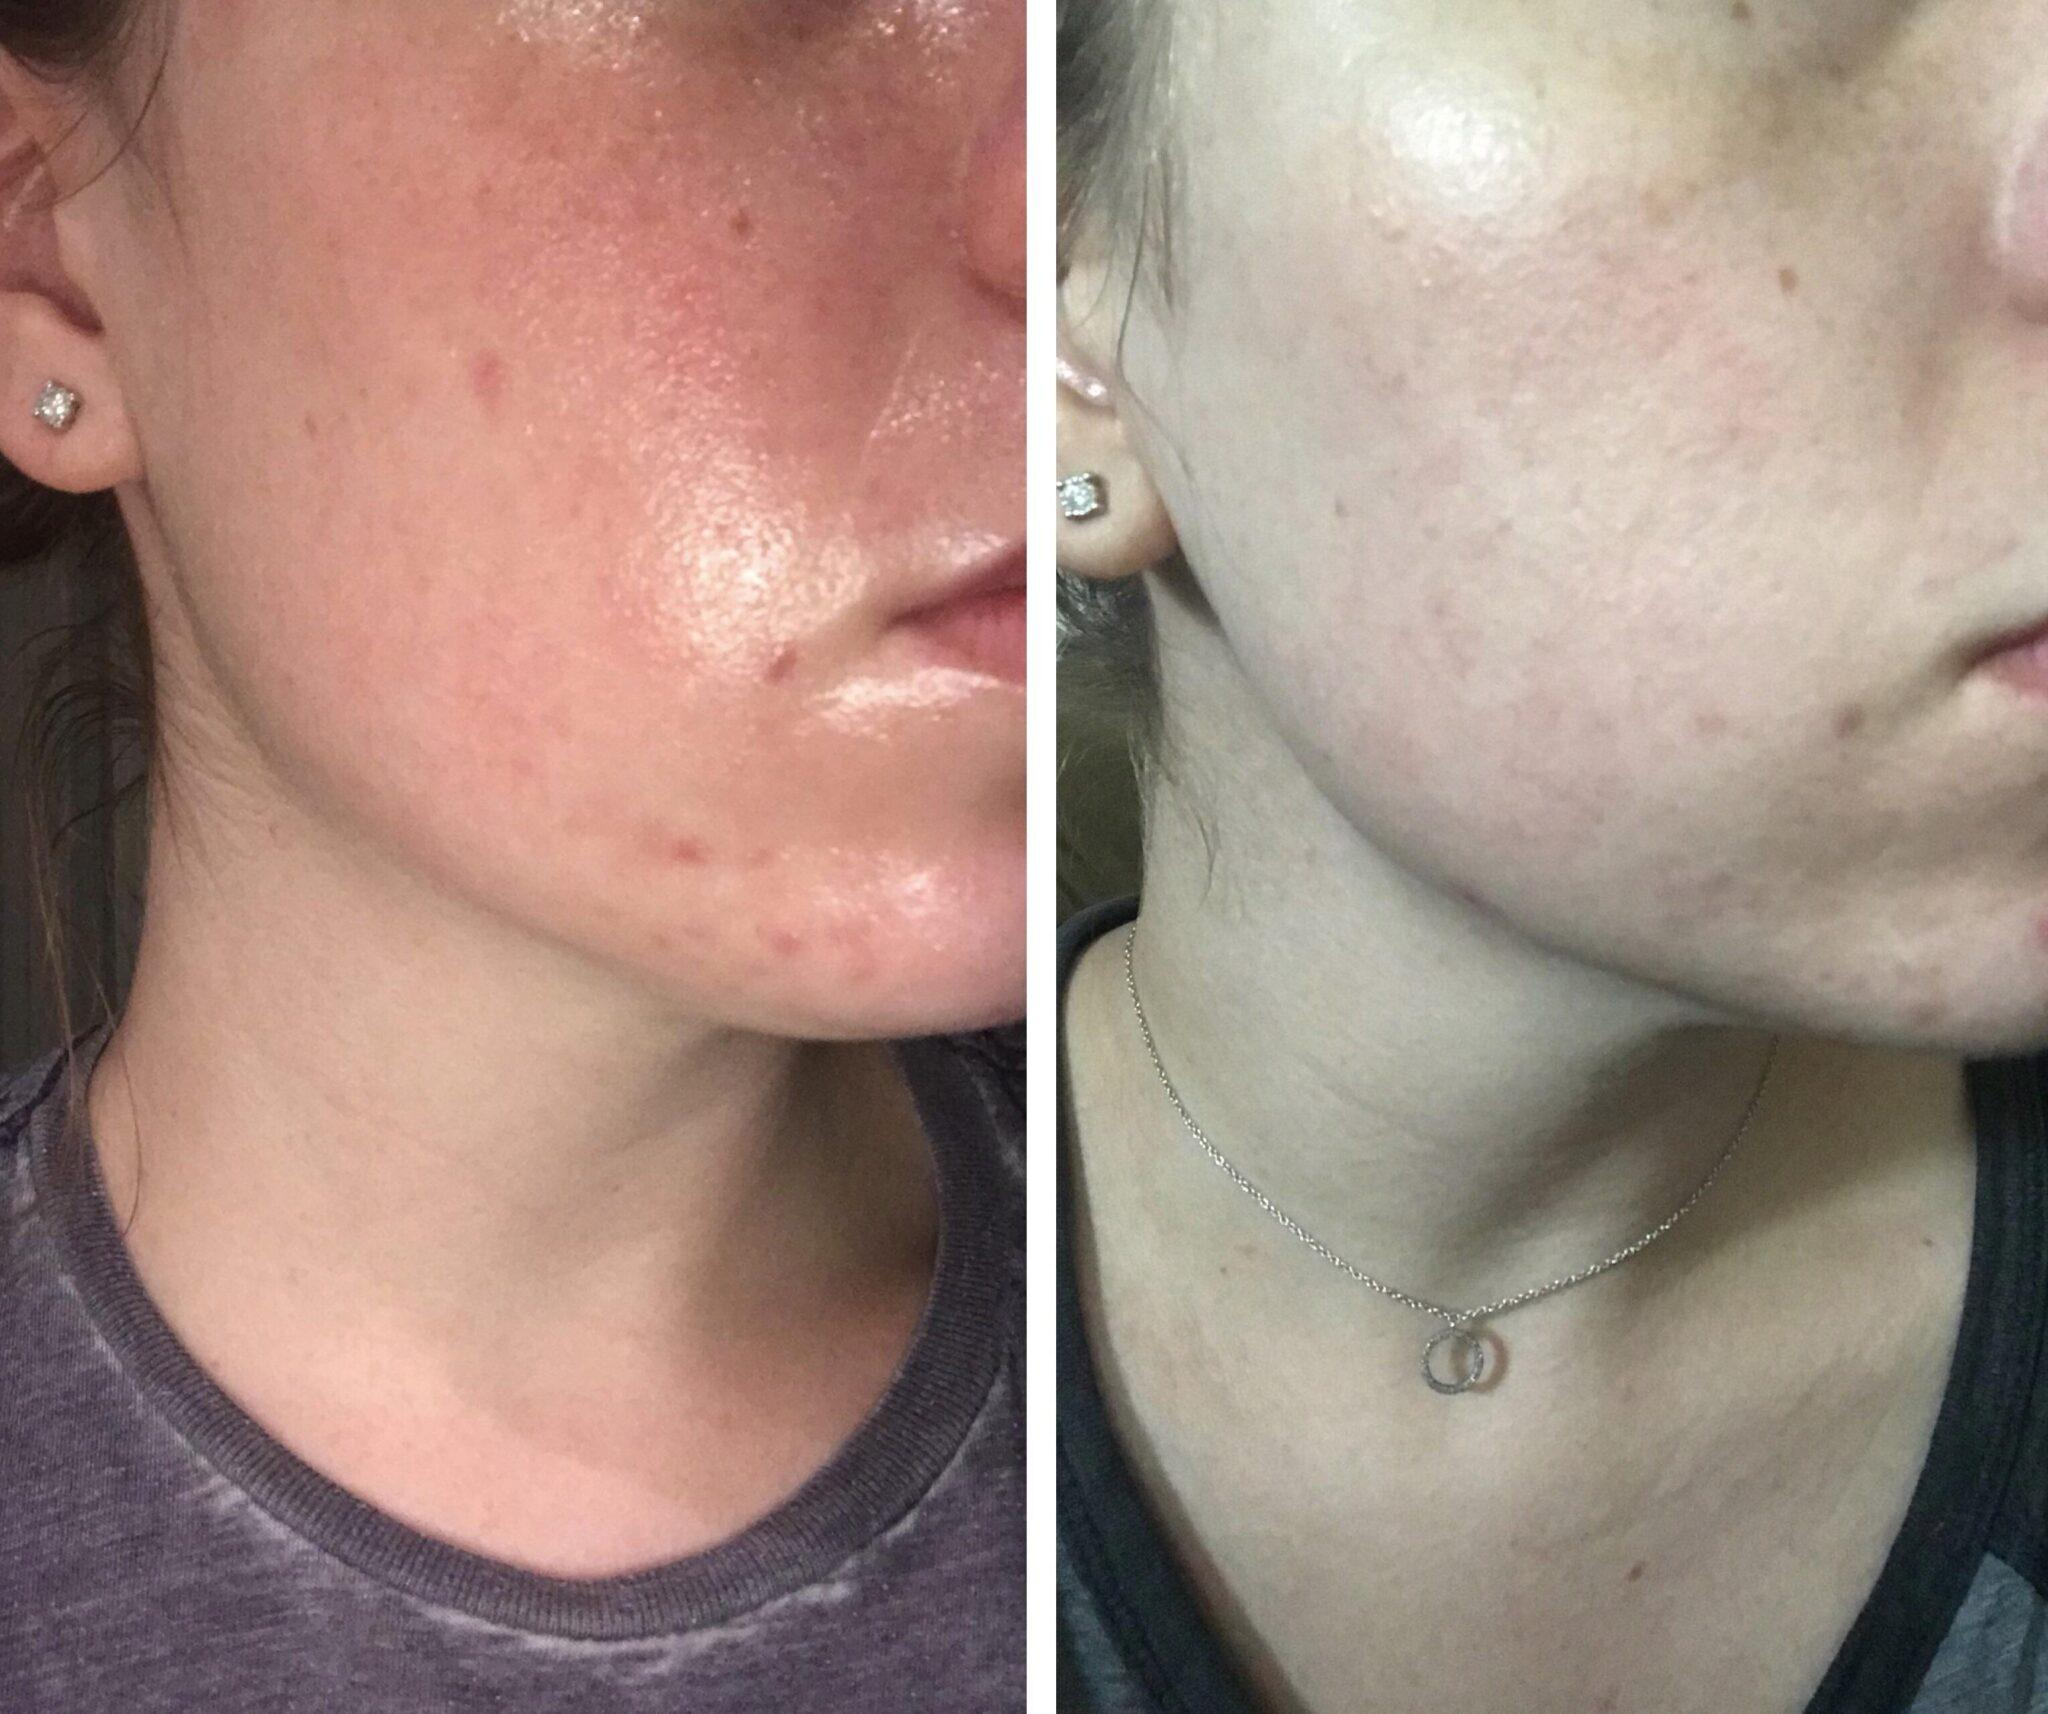 B&A] One month since adding Vitamin C and hyaluronic acid : SkincareAddiction